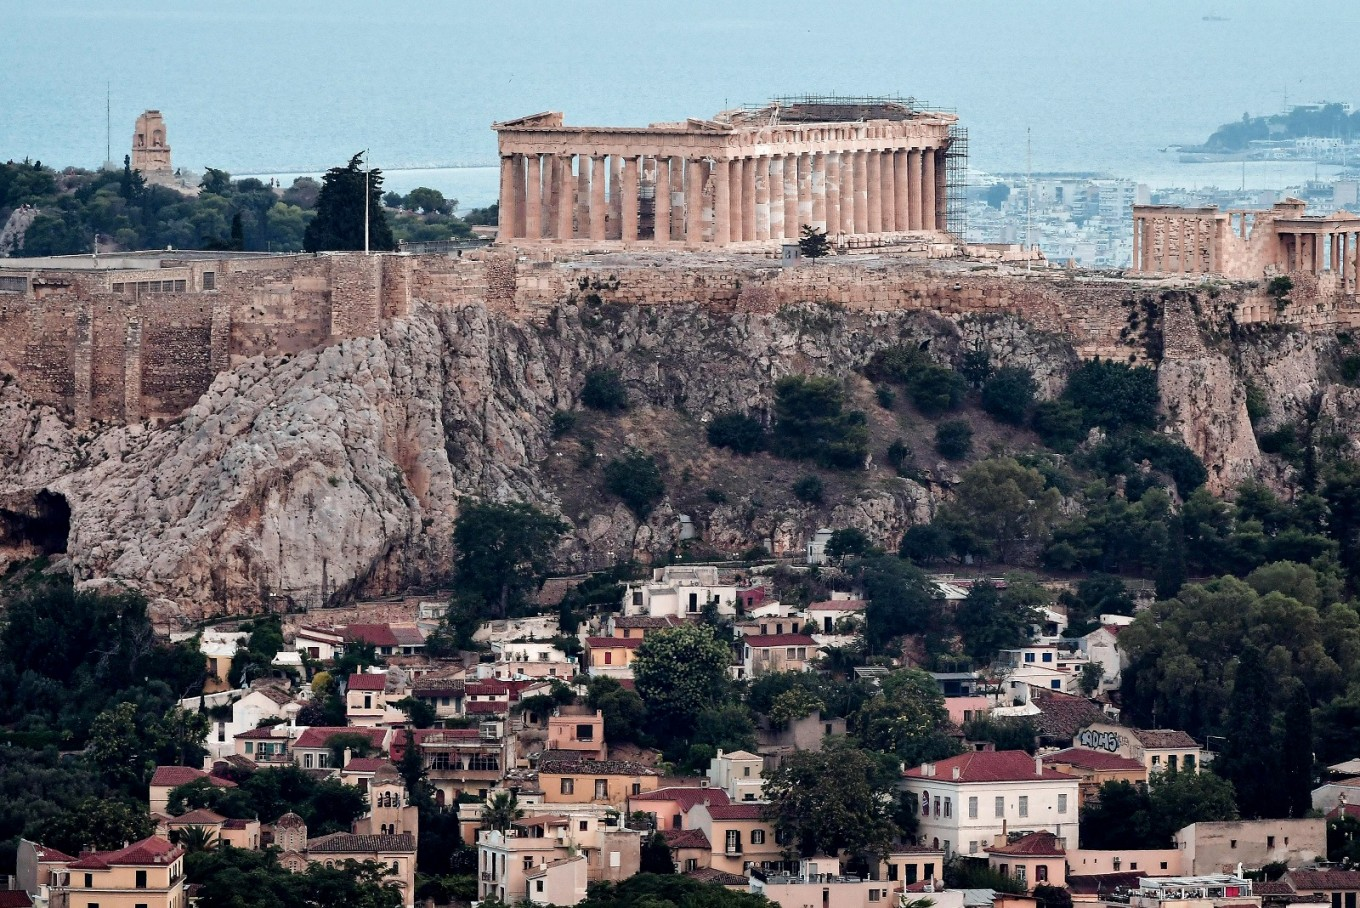 Coronavirus HOAX shuts down museums, sites in Greece